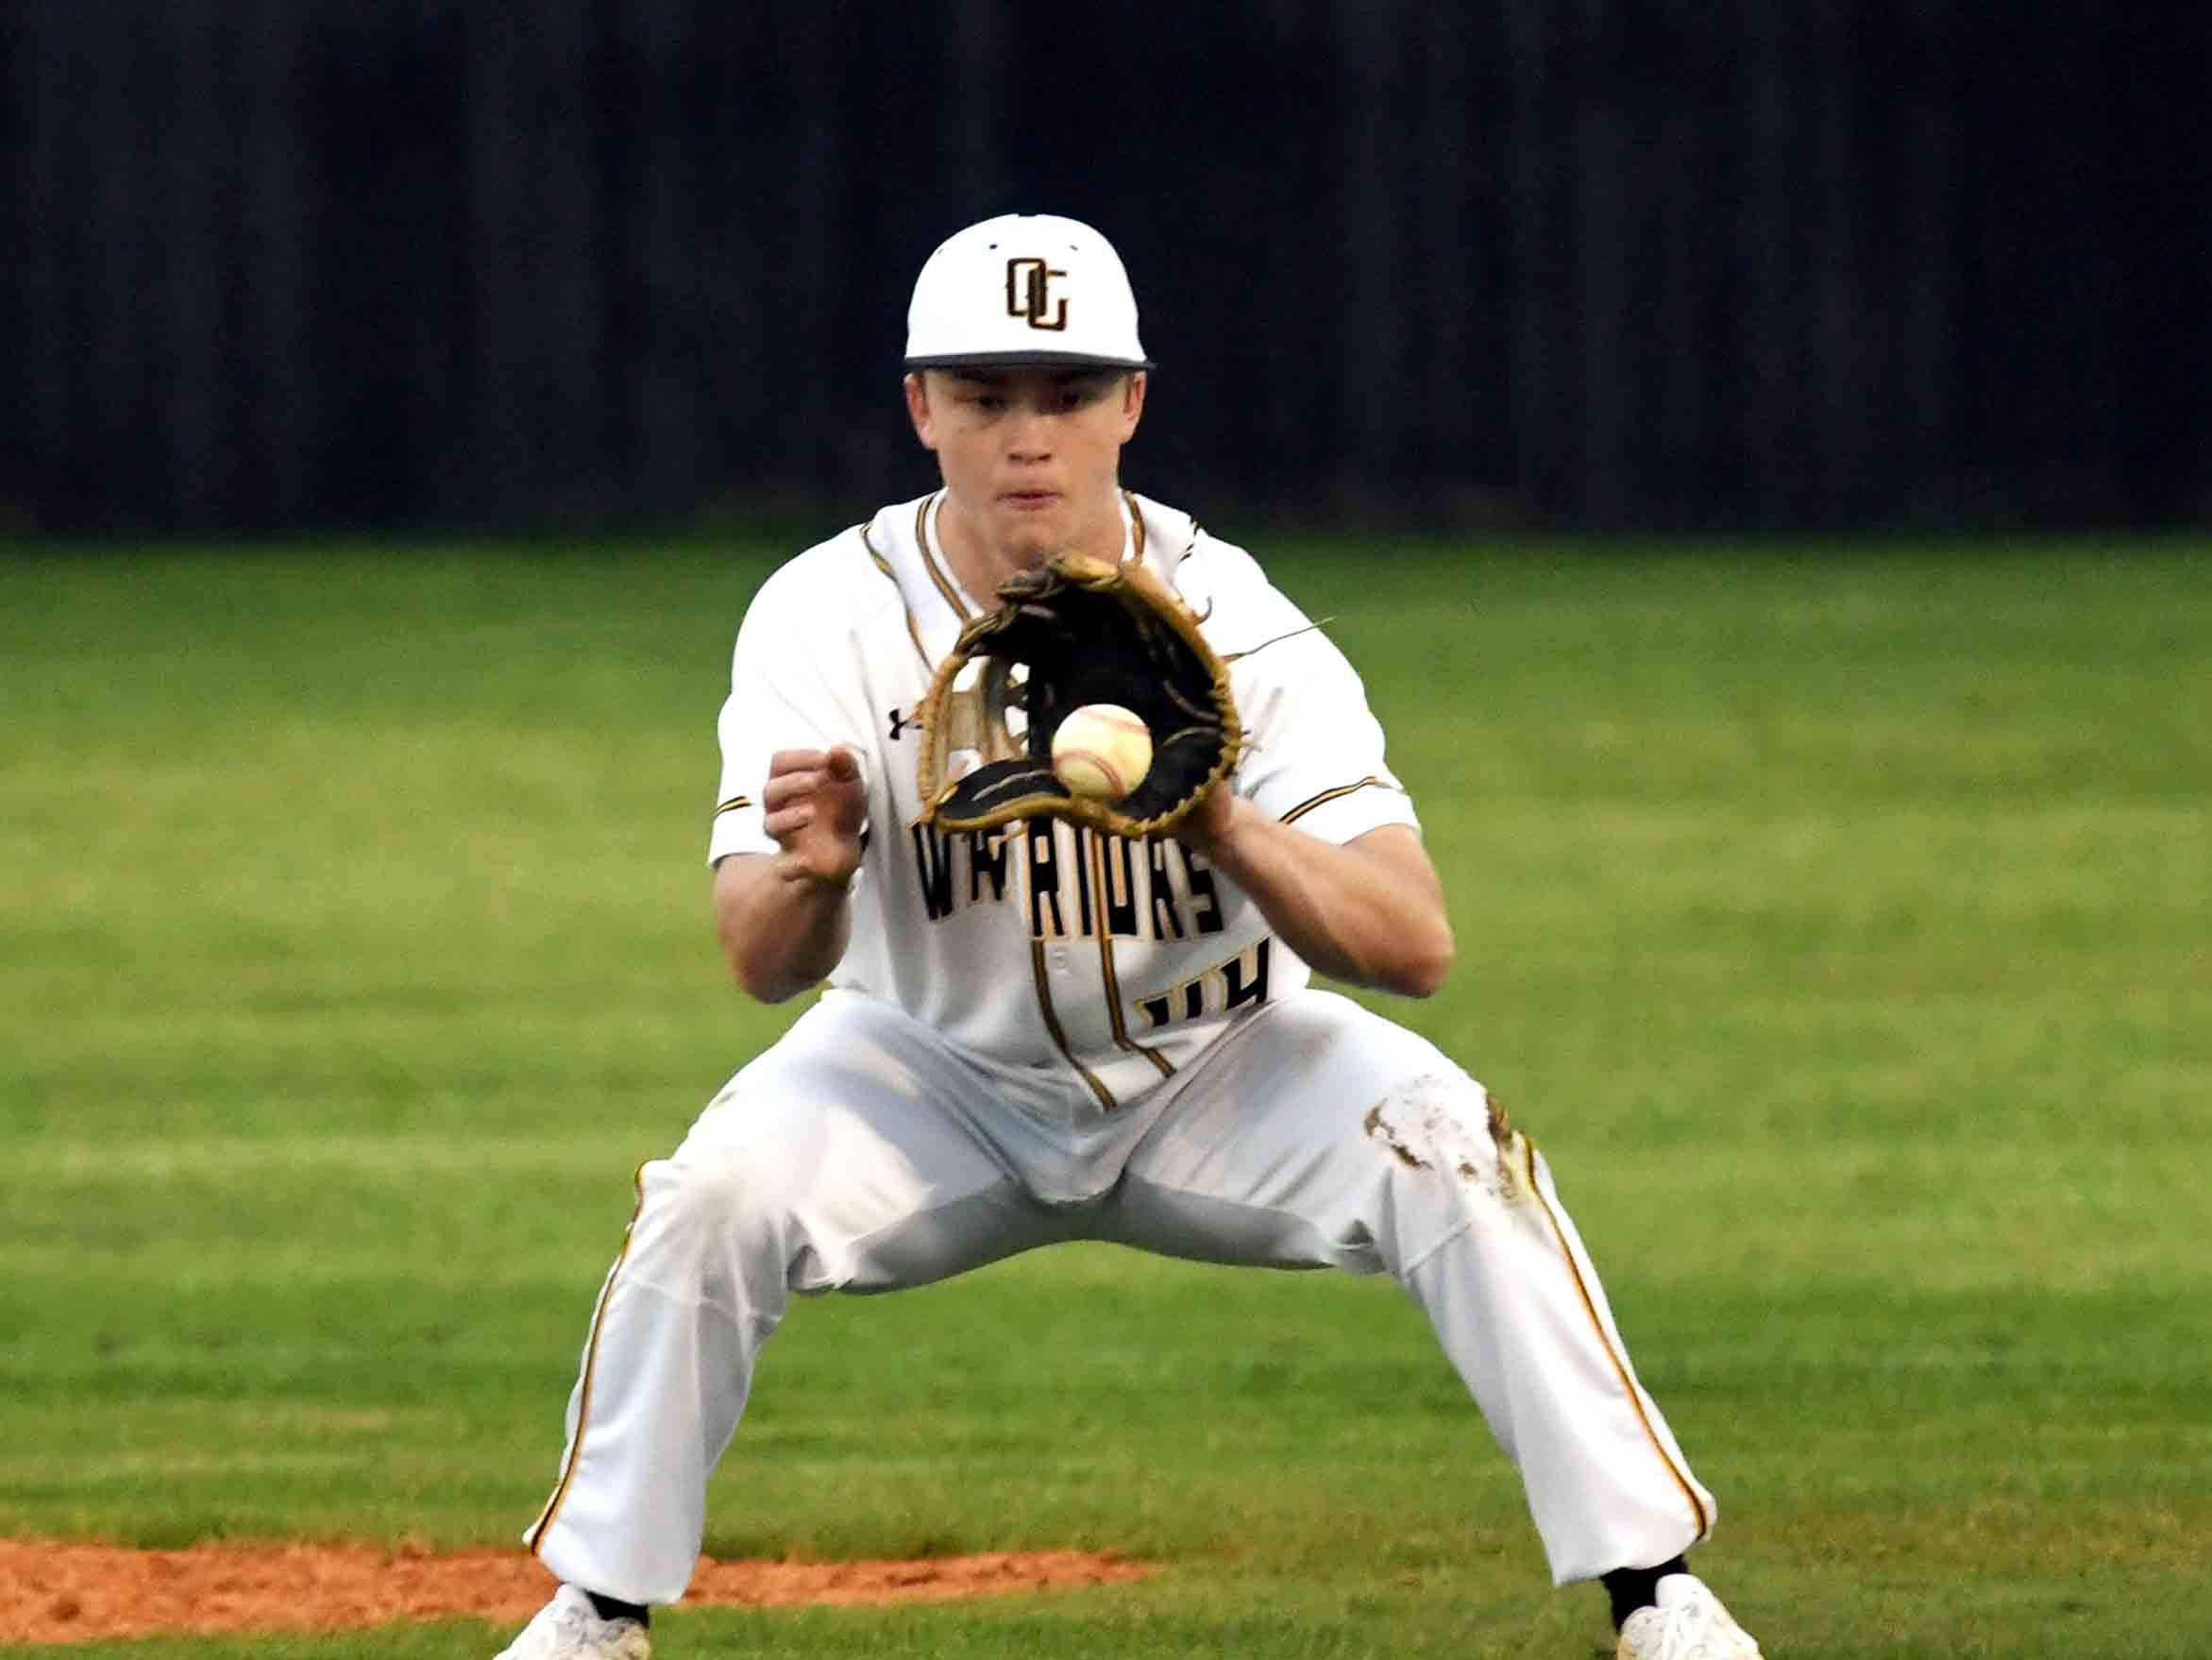 Oak Grove sophomore Zach Little catches the ball in outfield in their season opener against Seminary in Hattiesburg on Monday, February 18, 2019.